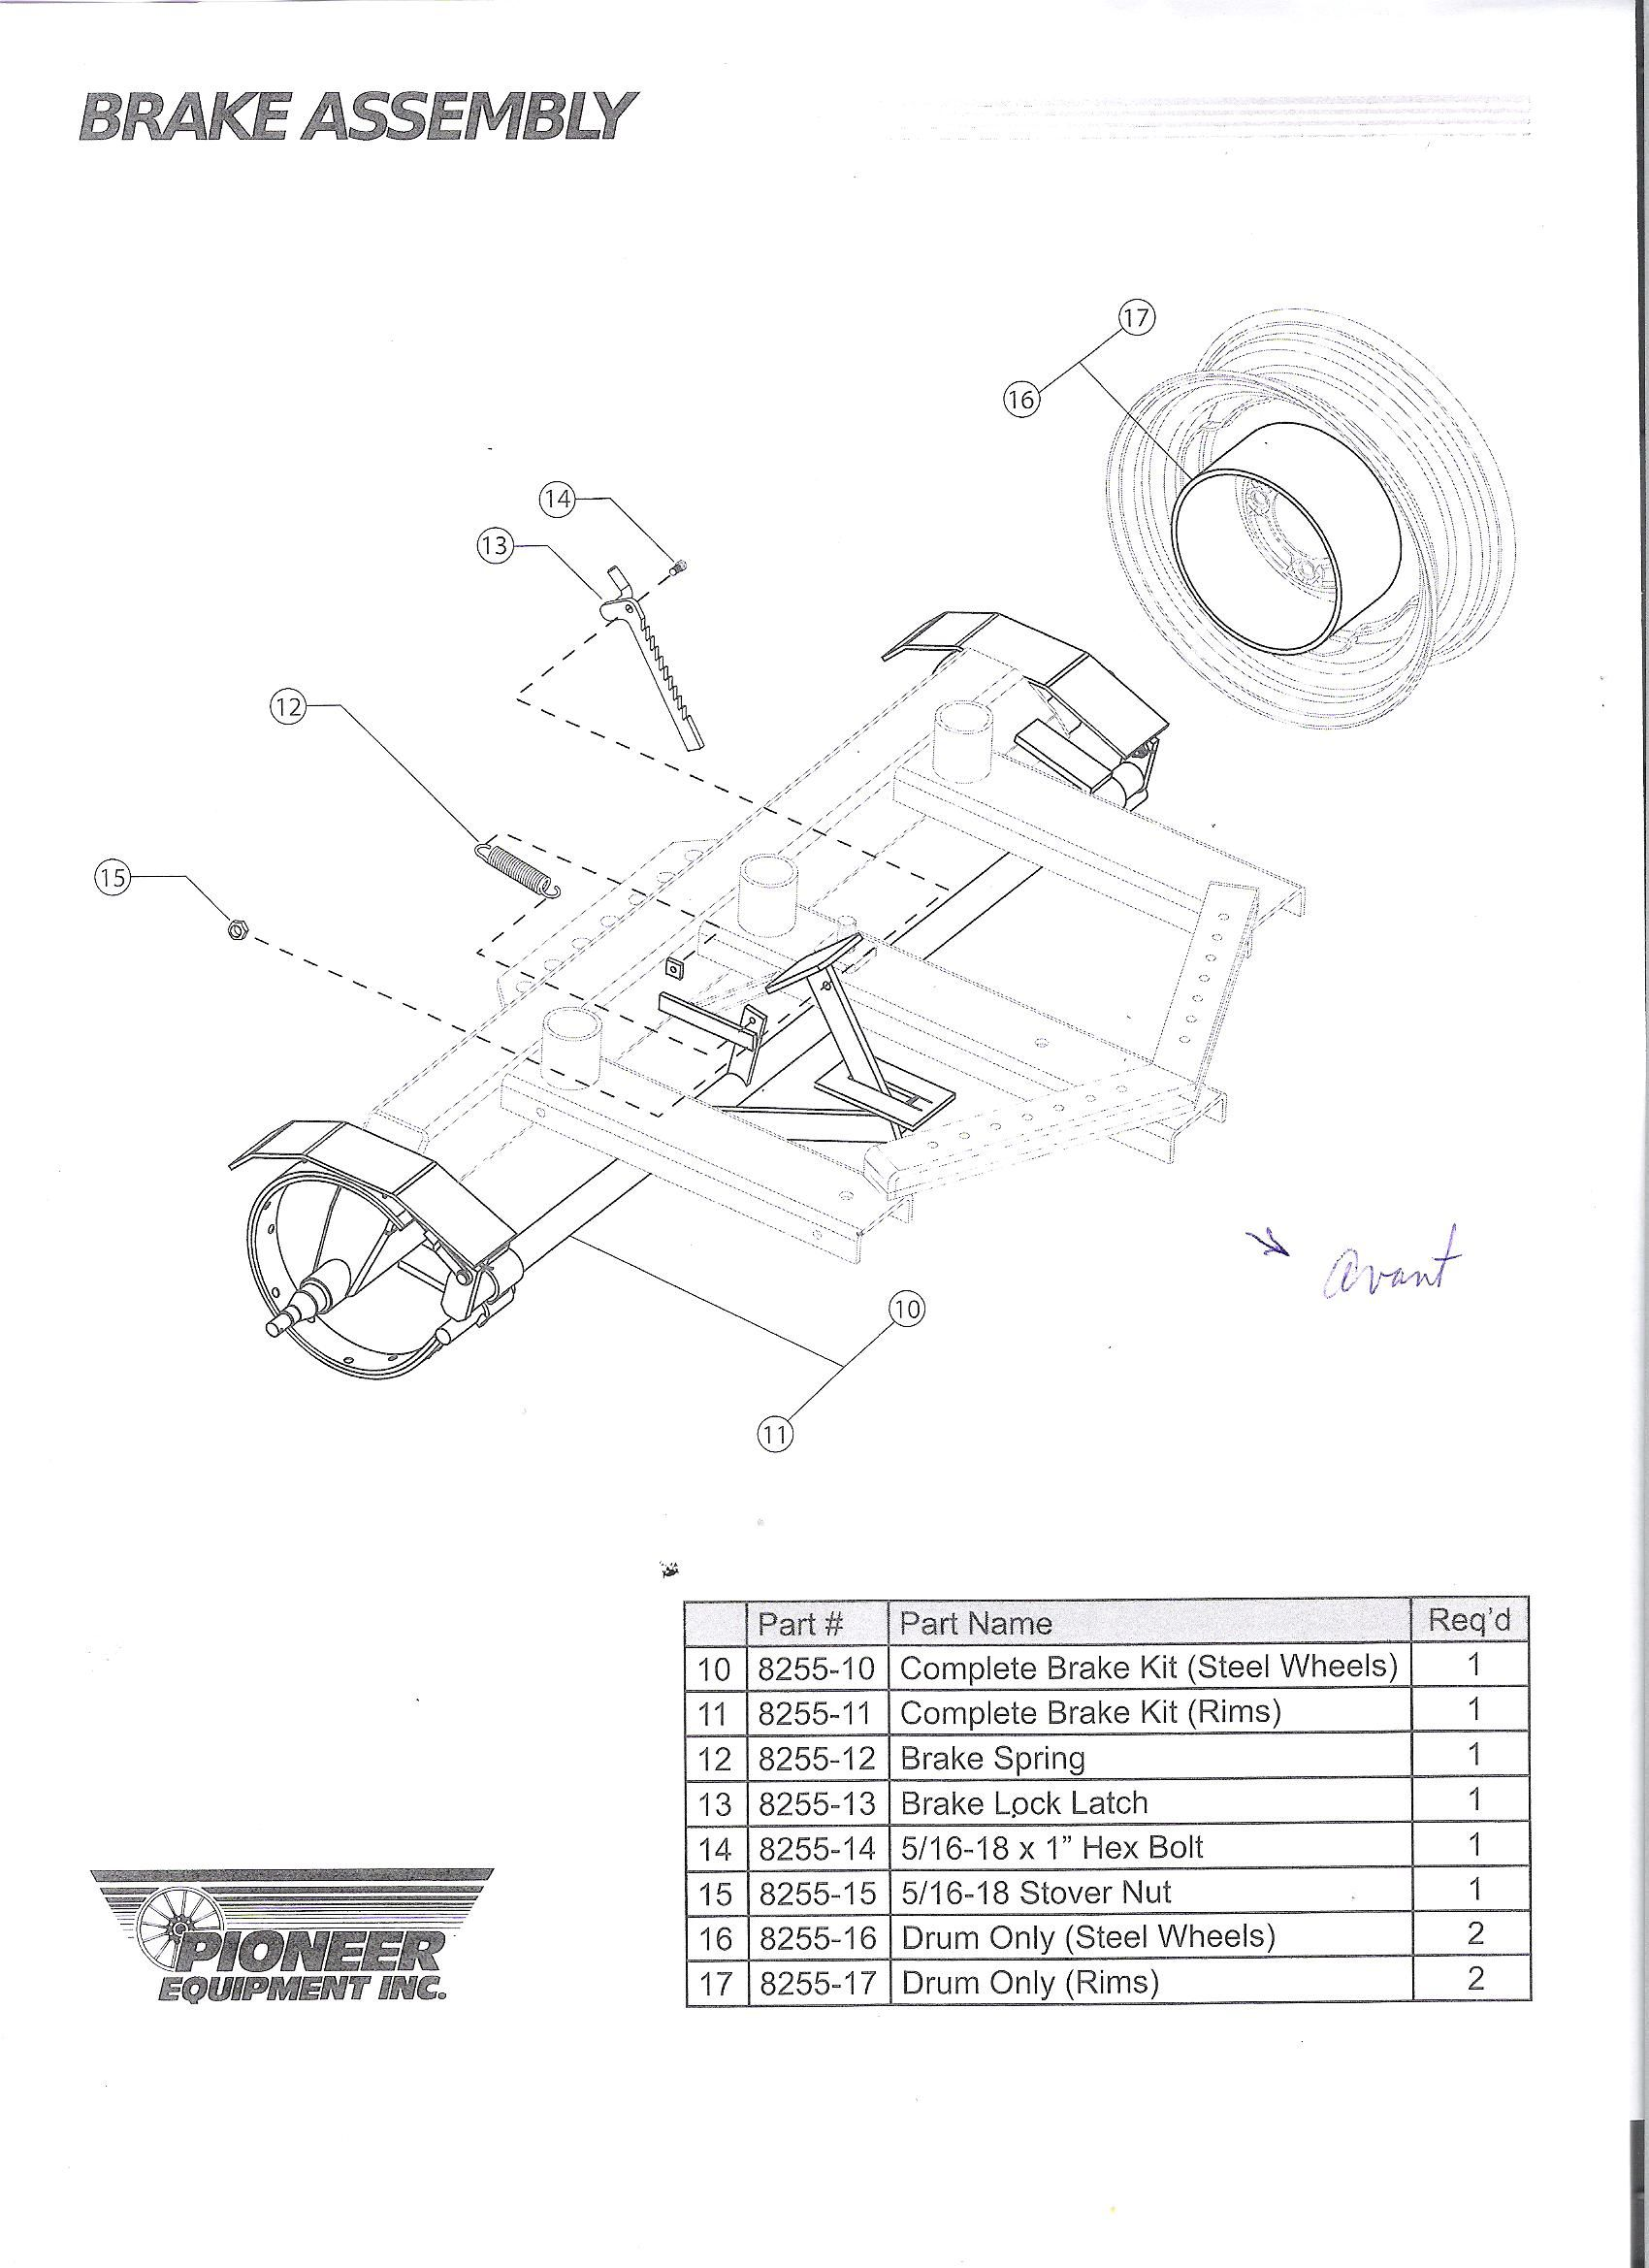 Bought Pioneer Mechanical Brake Kit For Rear Axle Along